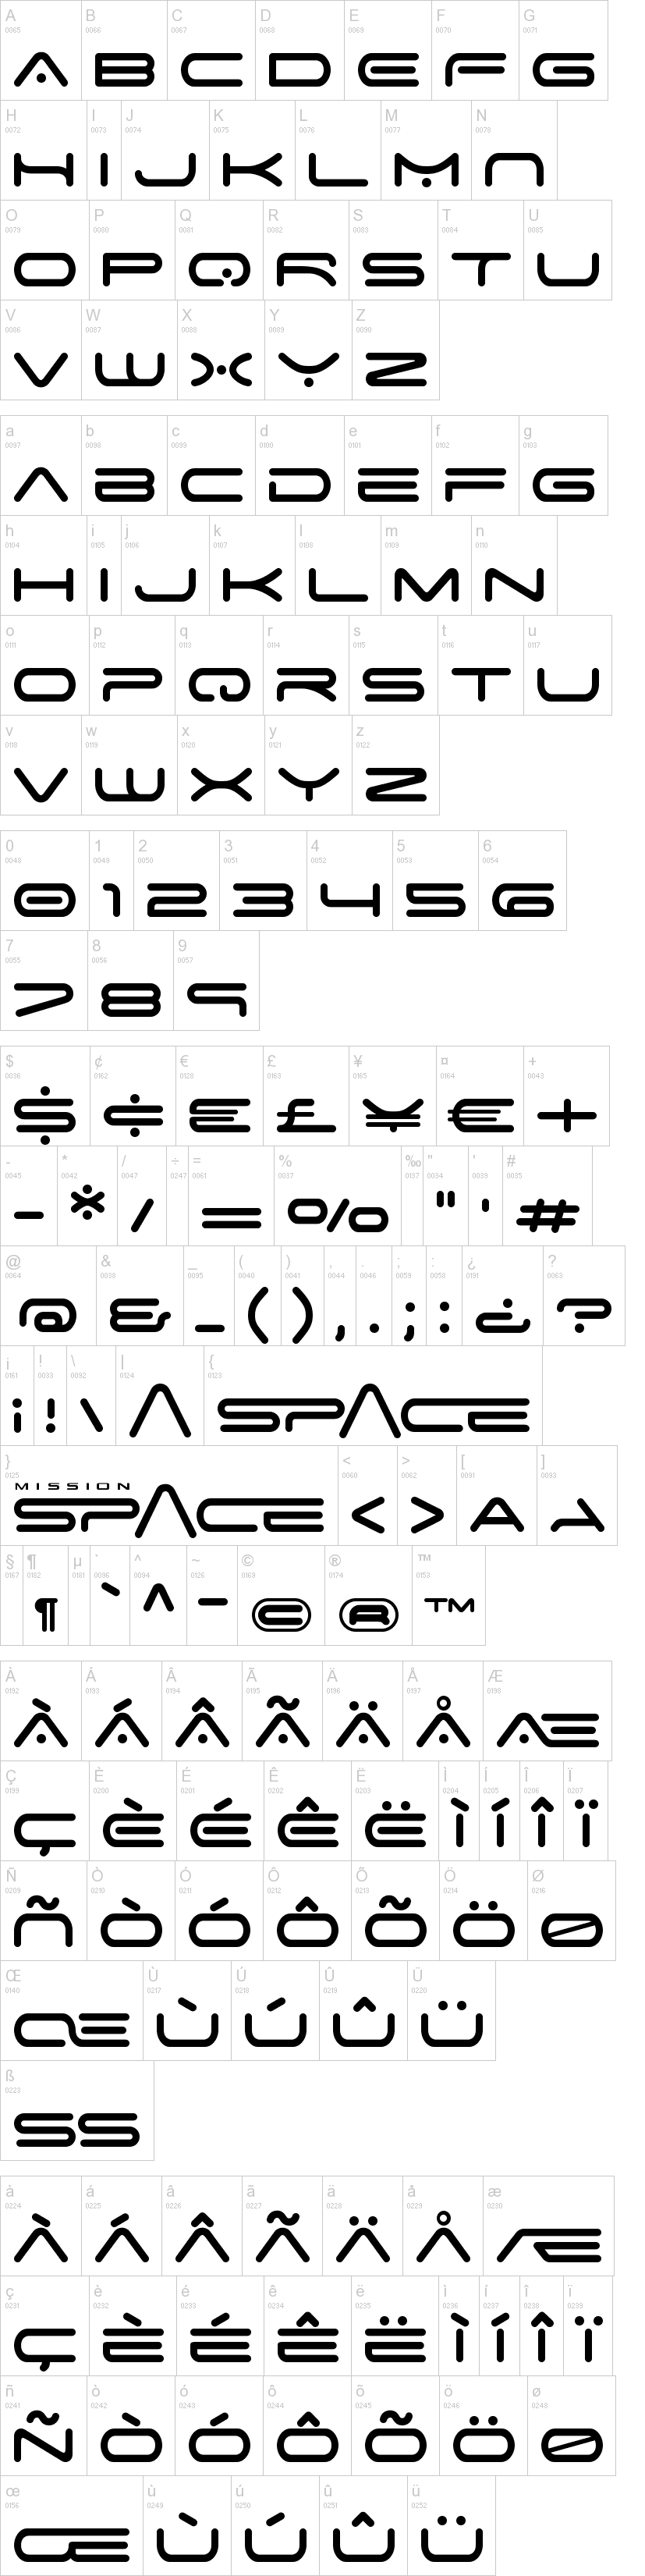 NASA Space Font - Pics about space